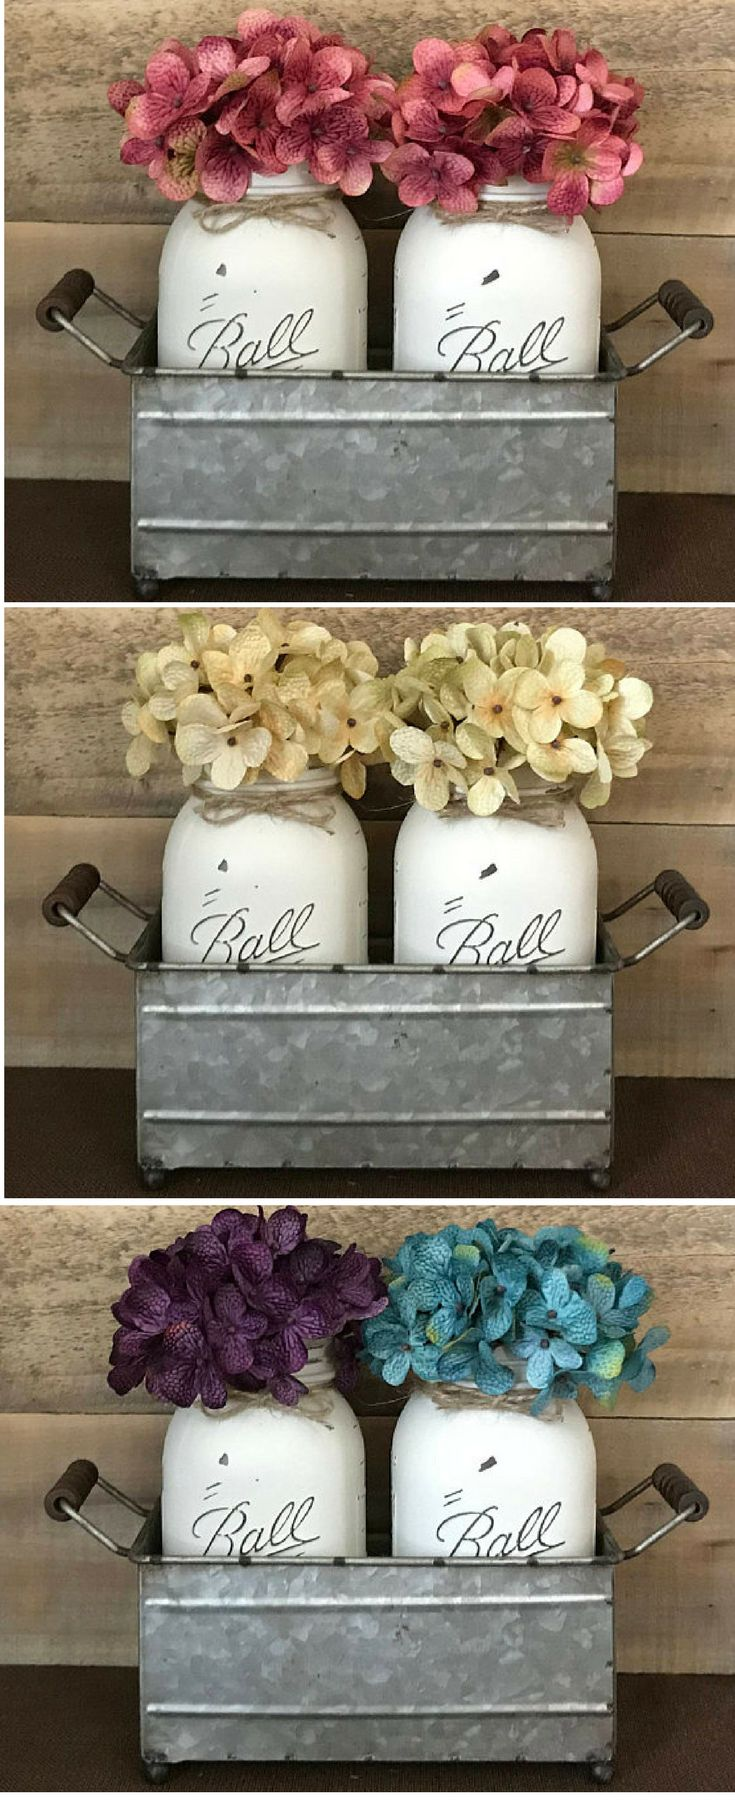 Perfect for dining table, kitchen table or island, coffee table, mantel....adds a pop of color and a touch of spring! Love hydrangeas! Mason Jar Centerpiece, Dining Room Centerpiece, Farmhouse decor, Rustic decor, Home Decor, Shabby Chic, living room decor, gift idea #ad